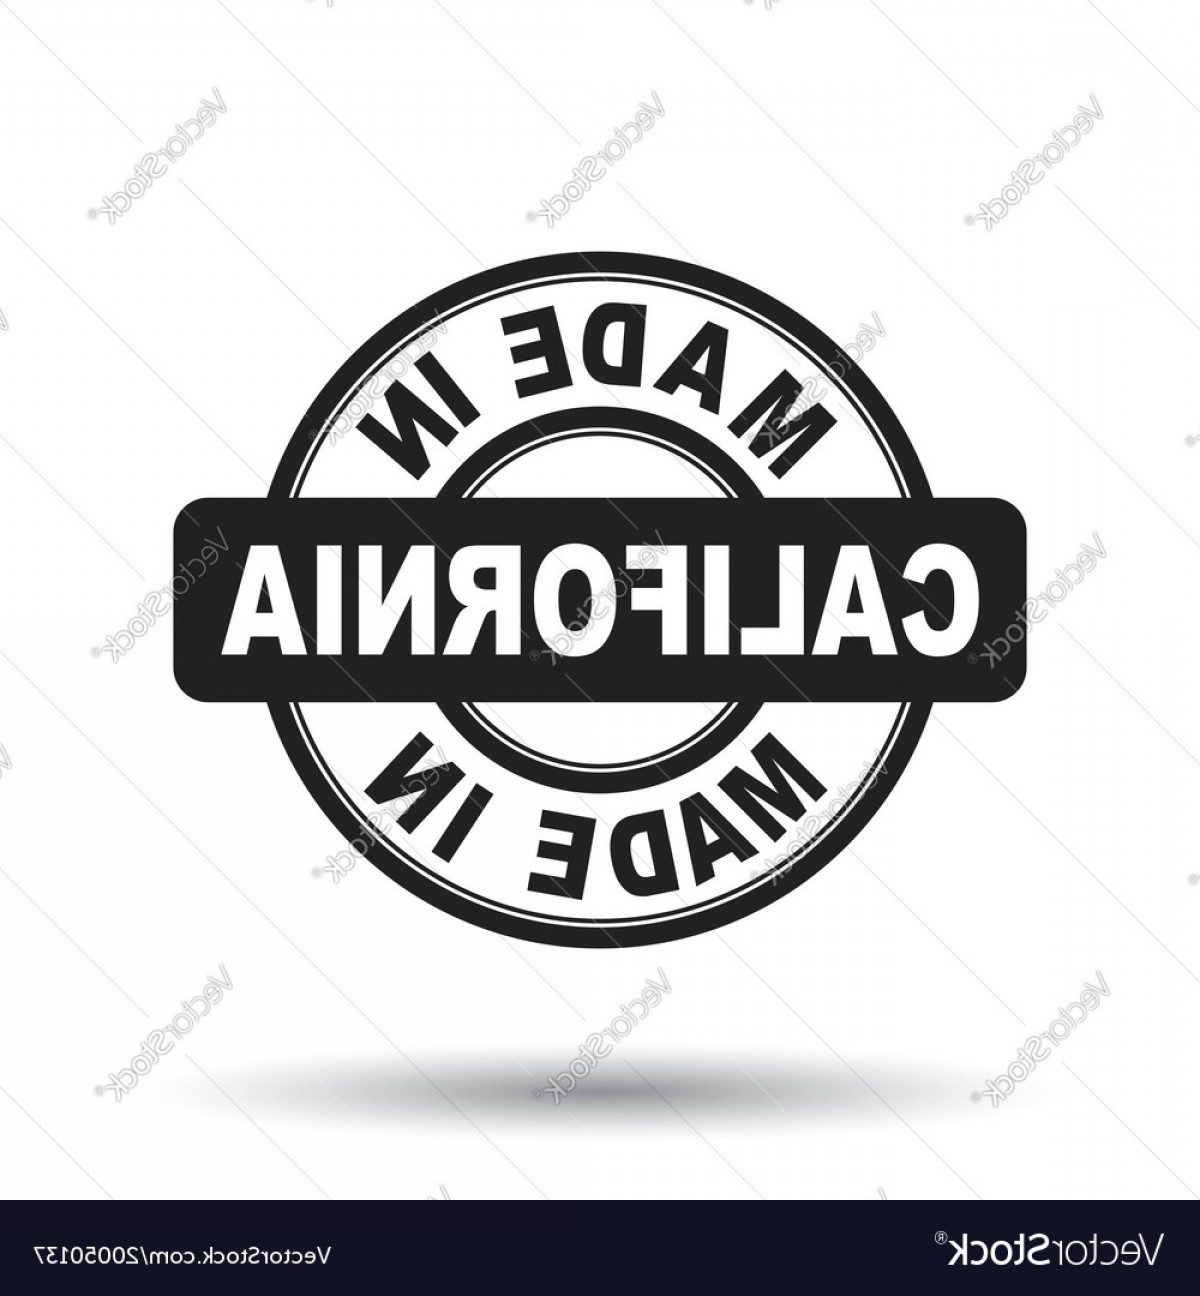 California Black And White Vector: Made In California Black Stamp On White Background Vector